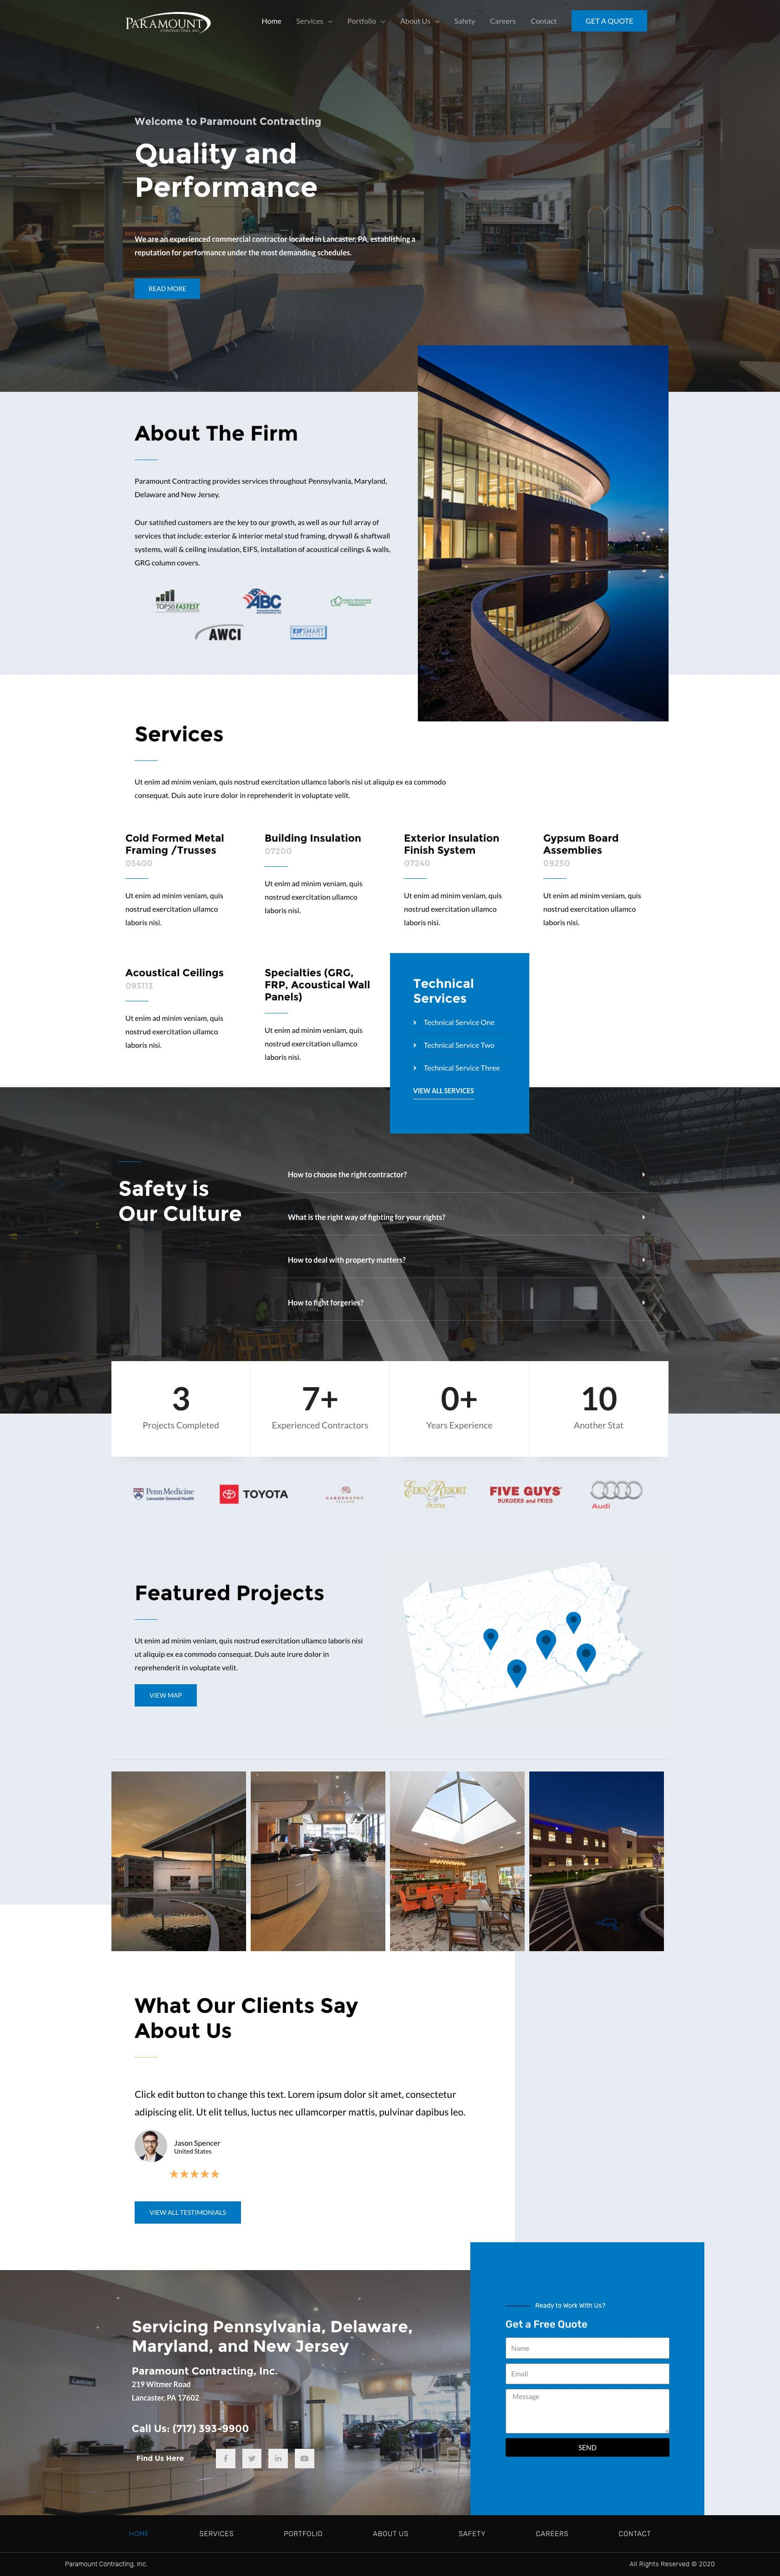 Paramount Construction Home Page Example